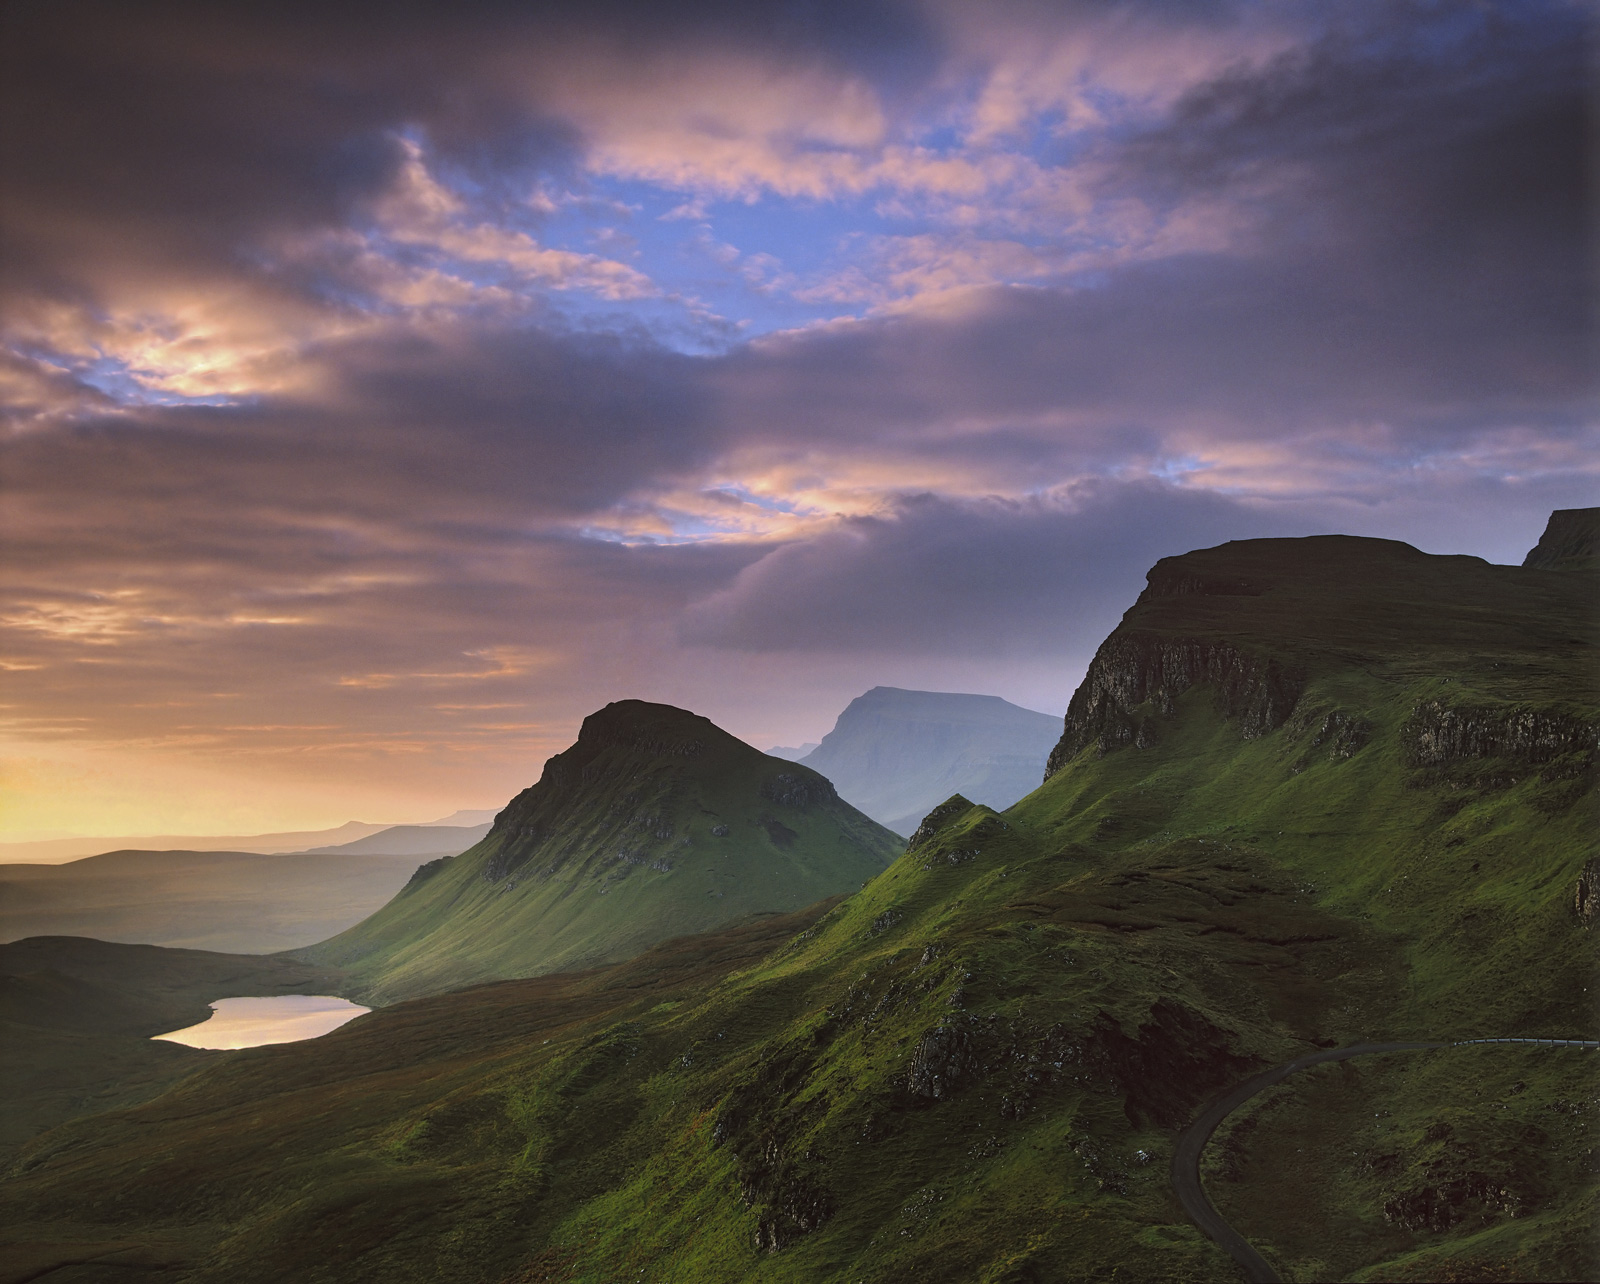 Honey light from a breaking dawn washes over the velvet slopes of the Quiraing painting the under belly of the clouds and duly...